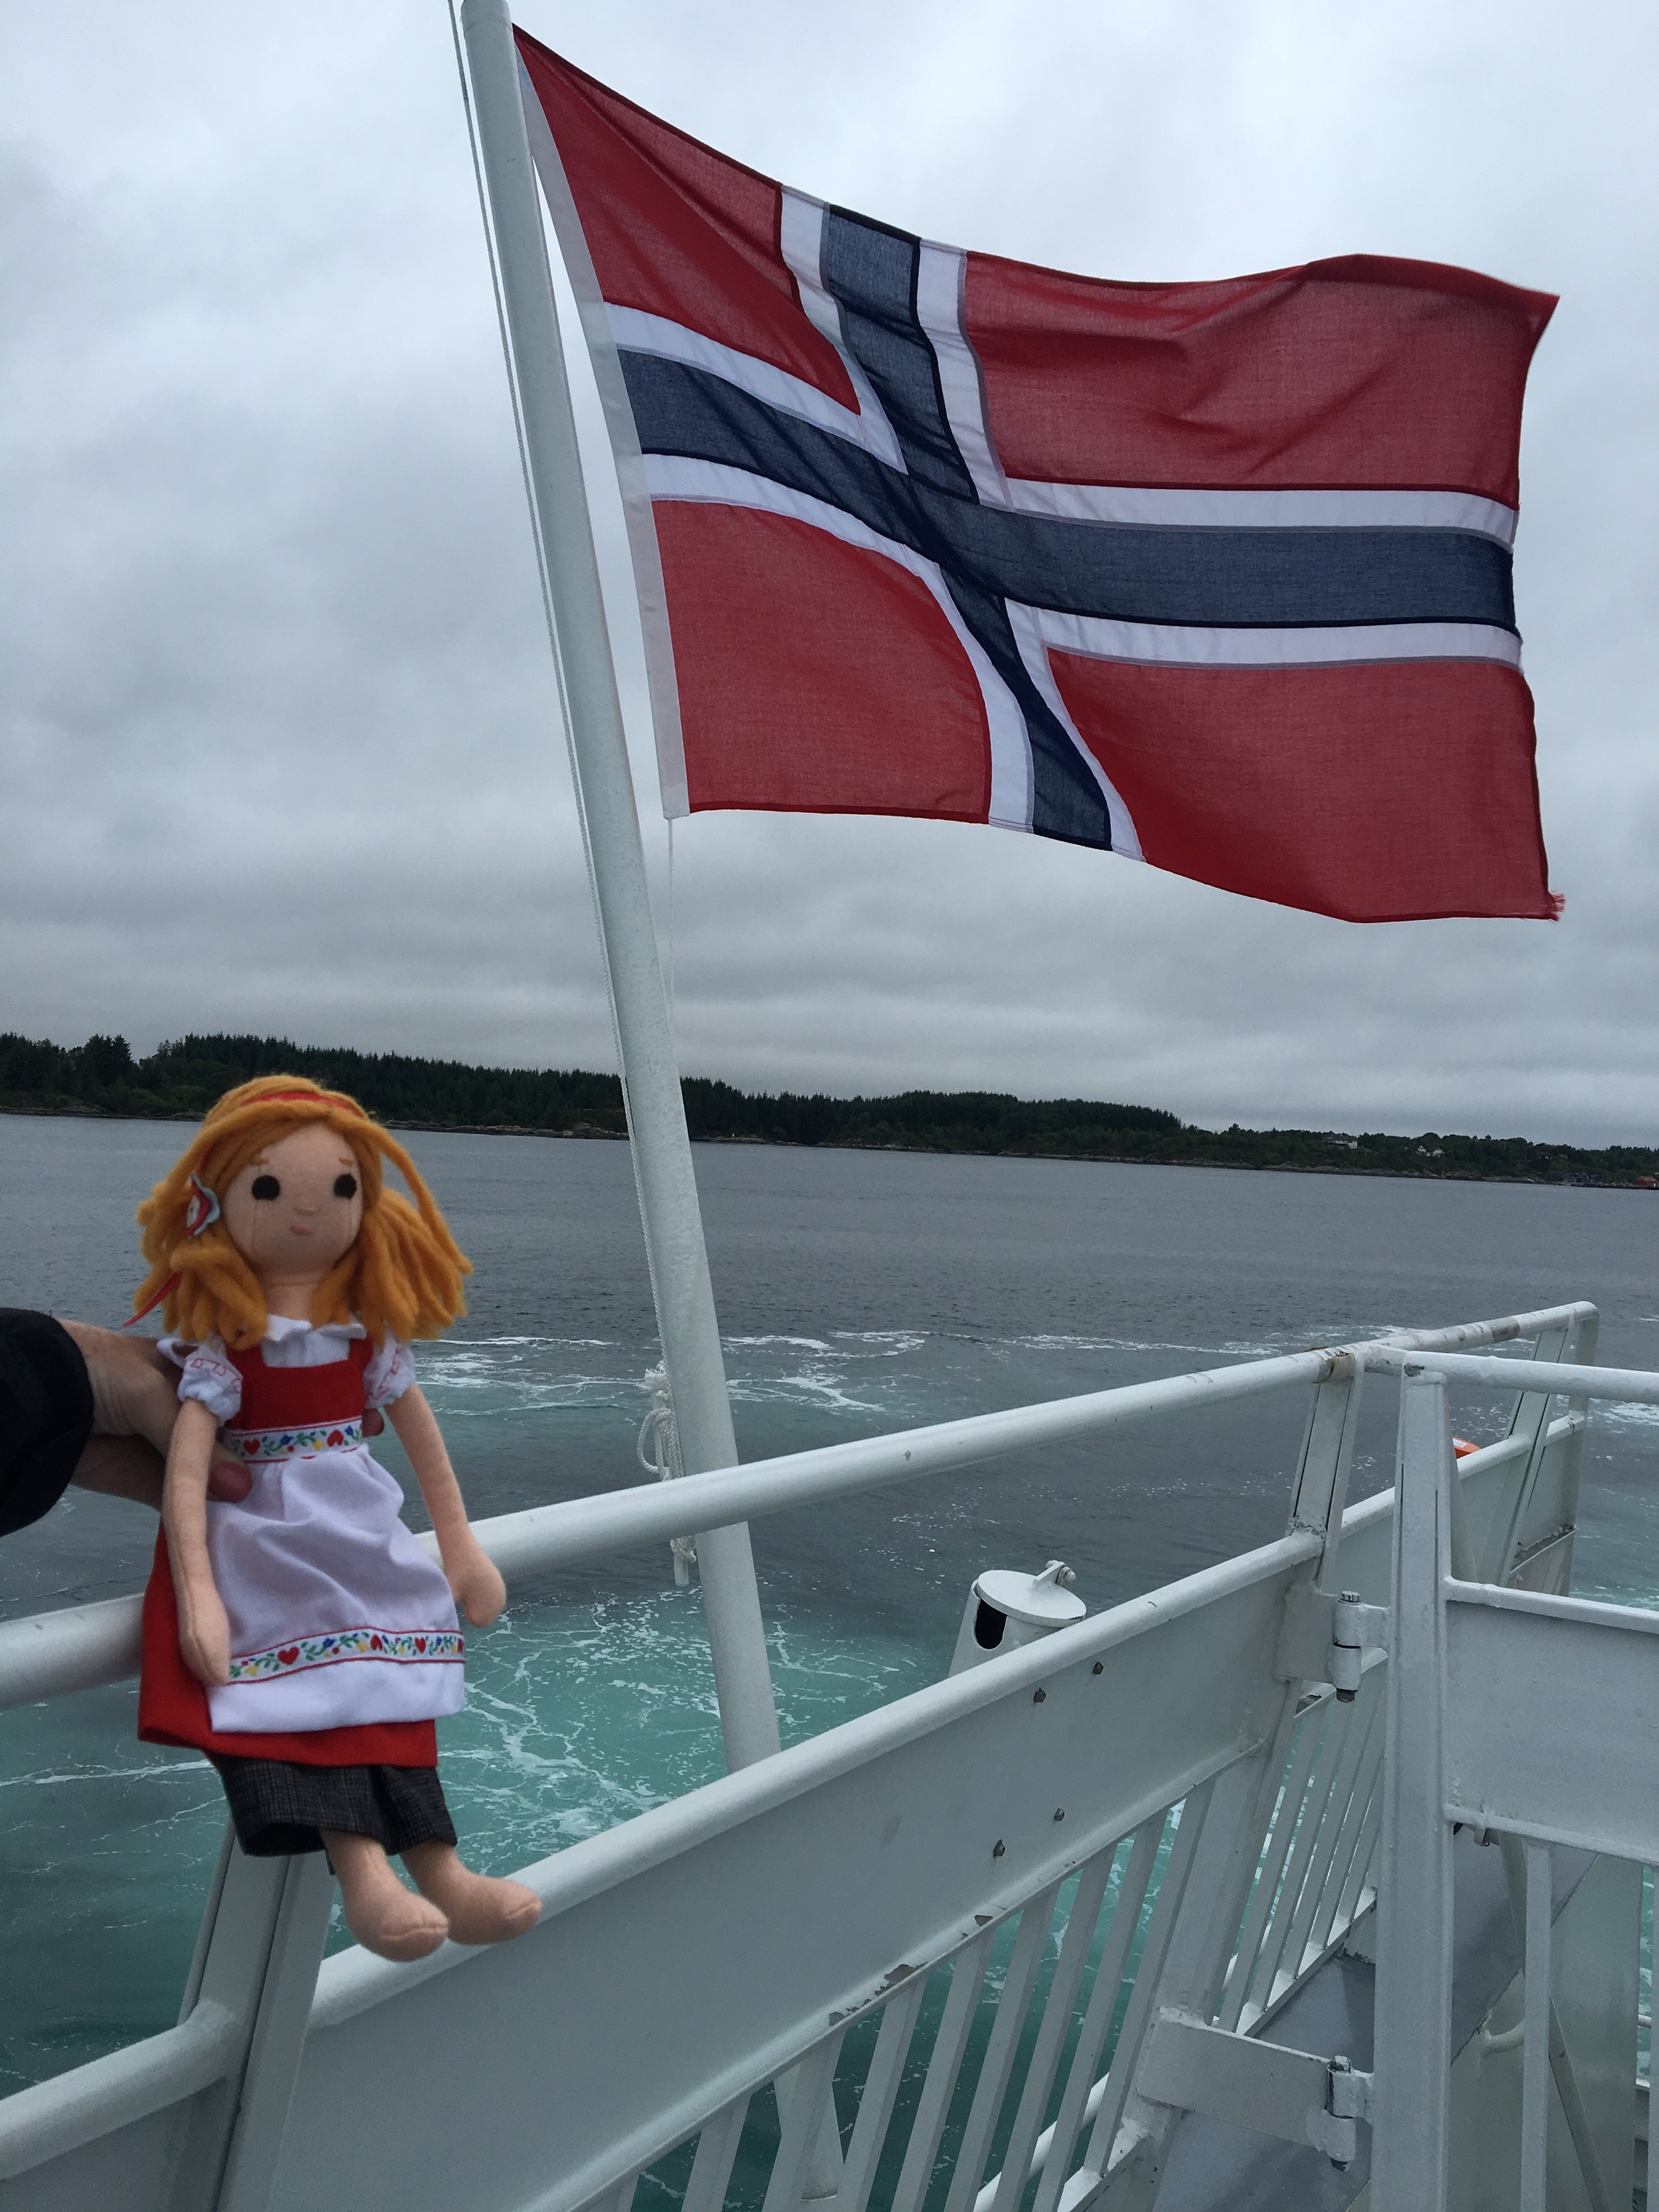 Phoebe travels by boat in Norway